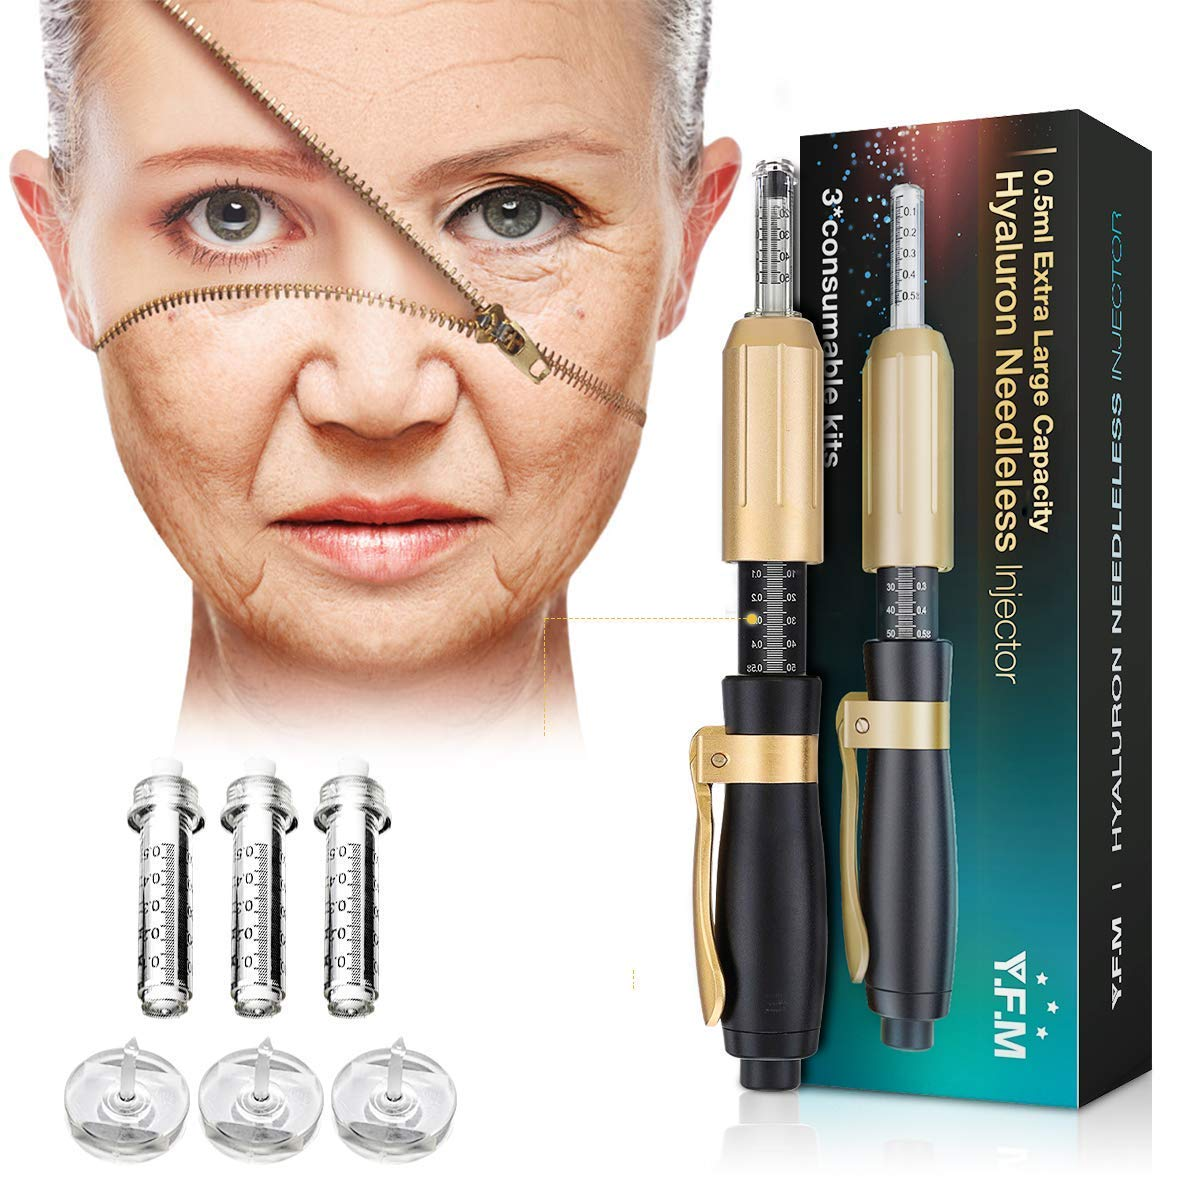 0.5ML Hyaluron Pen, YFM Hyaluron Pen (with 3 Ampoules), Help to Reduce Blemishes and Wrinkles, Restore Skin Elasticity